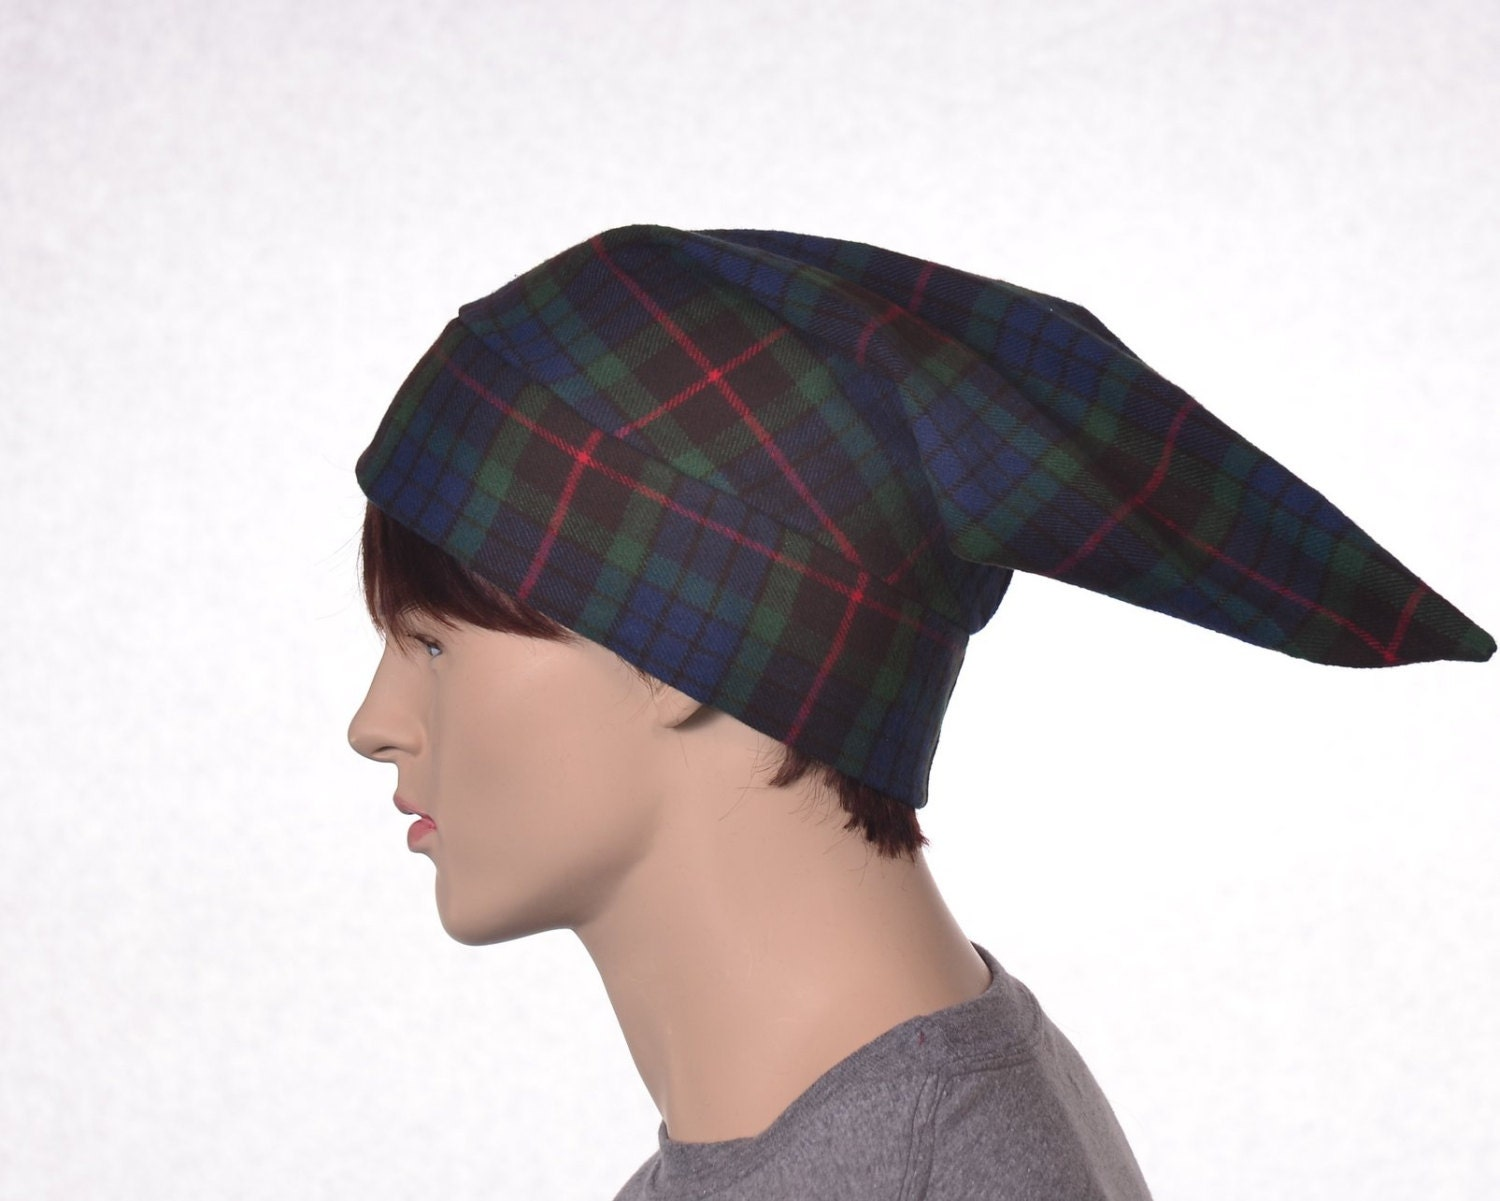 c5338849ac Cotton Flannel Night Cap in Green Tartan Plaid Heavyweight ...